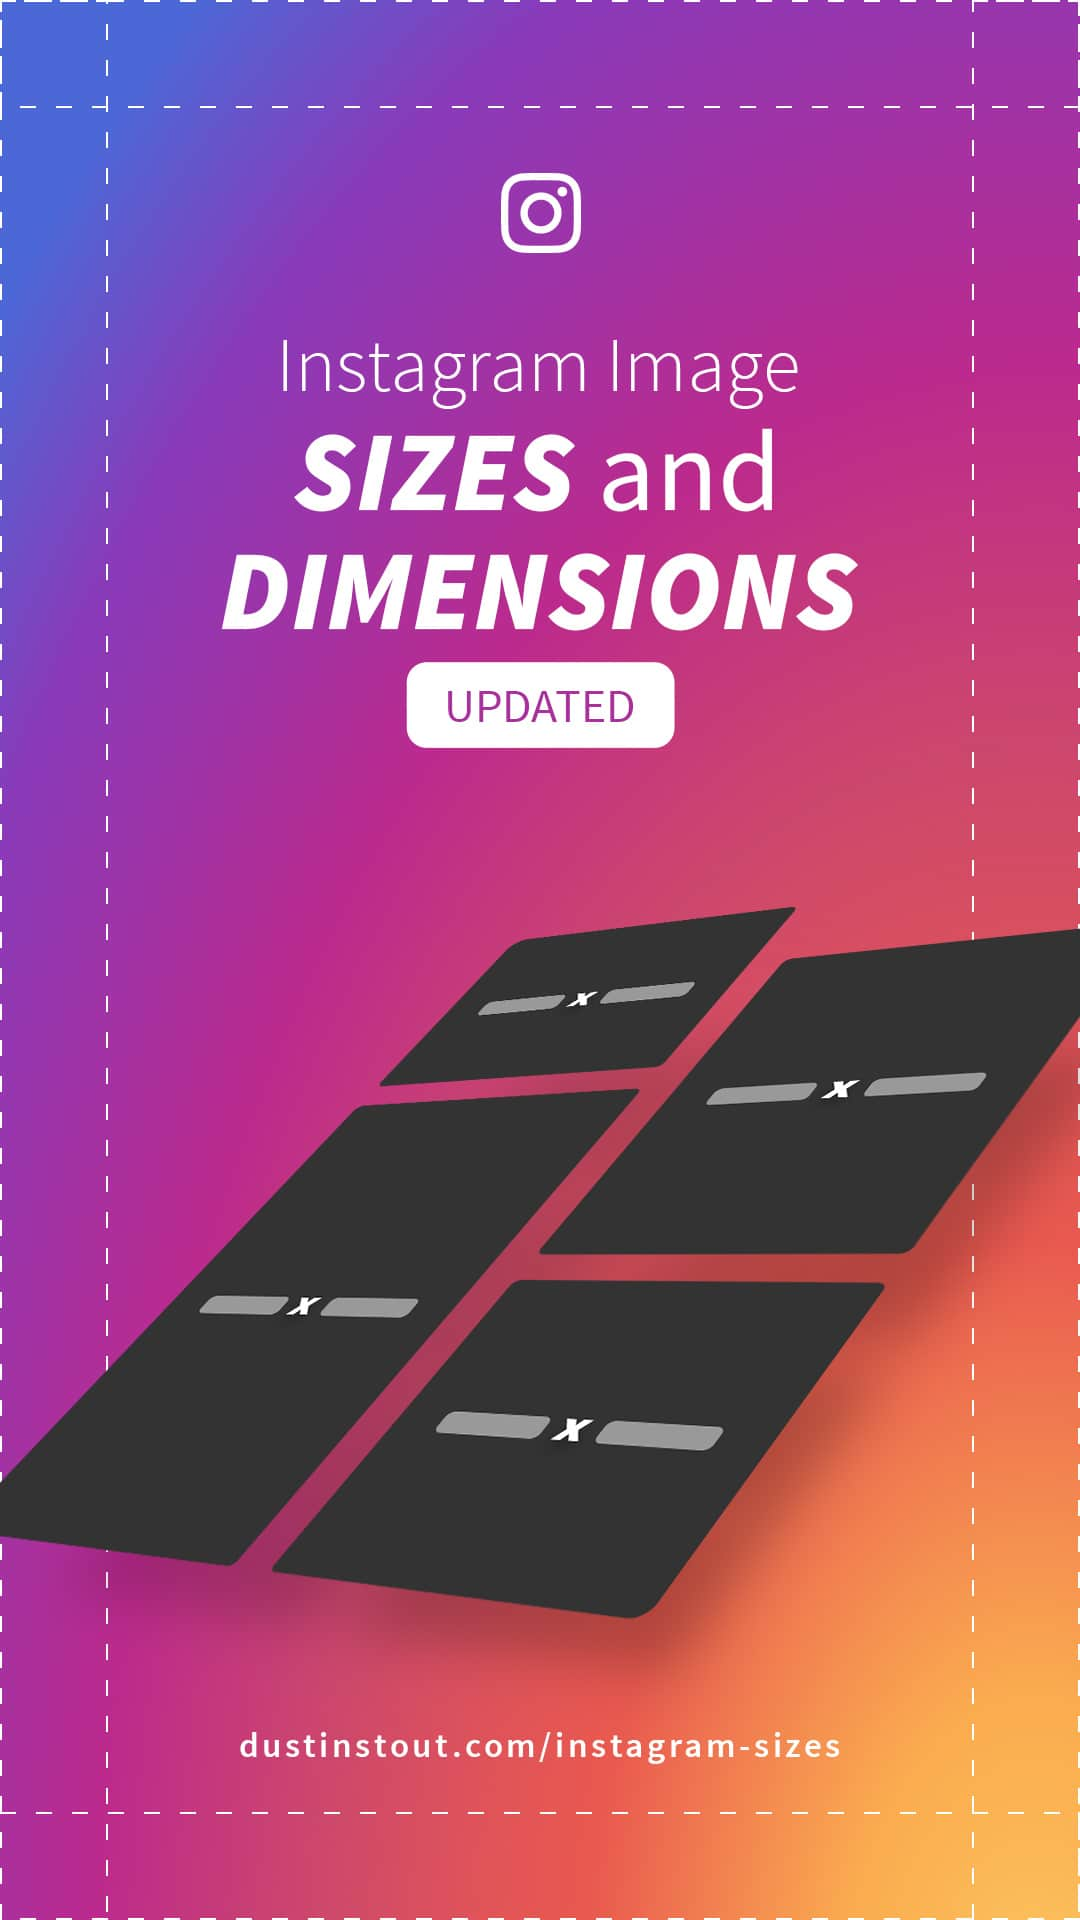 Instagram Image Sizes and Dimensions 2020: Everything You Need to Know